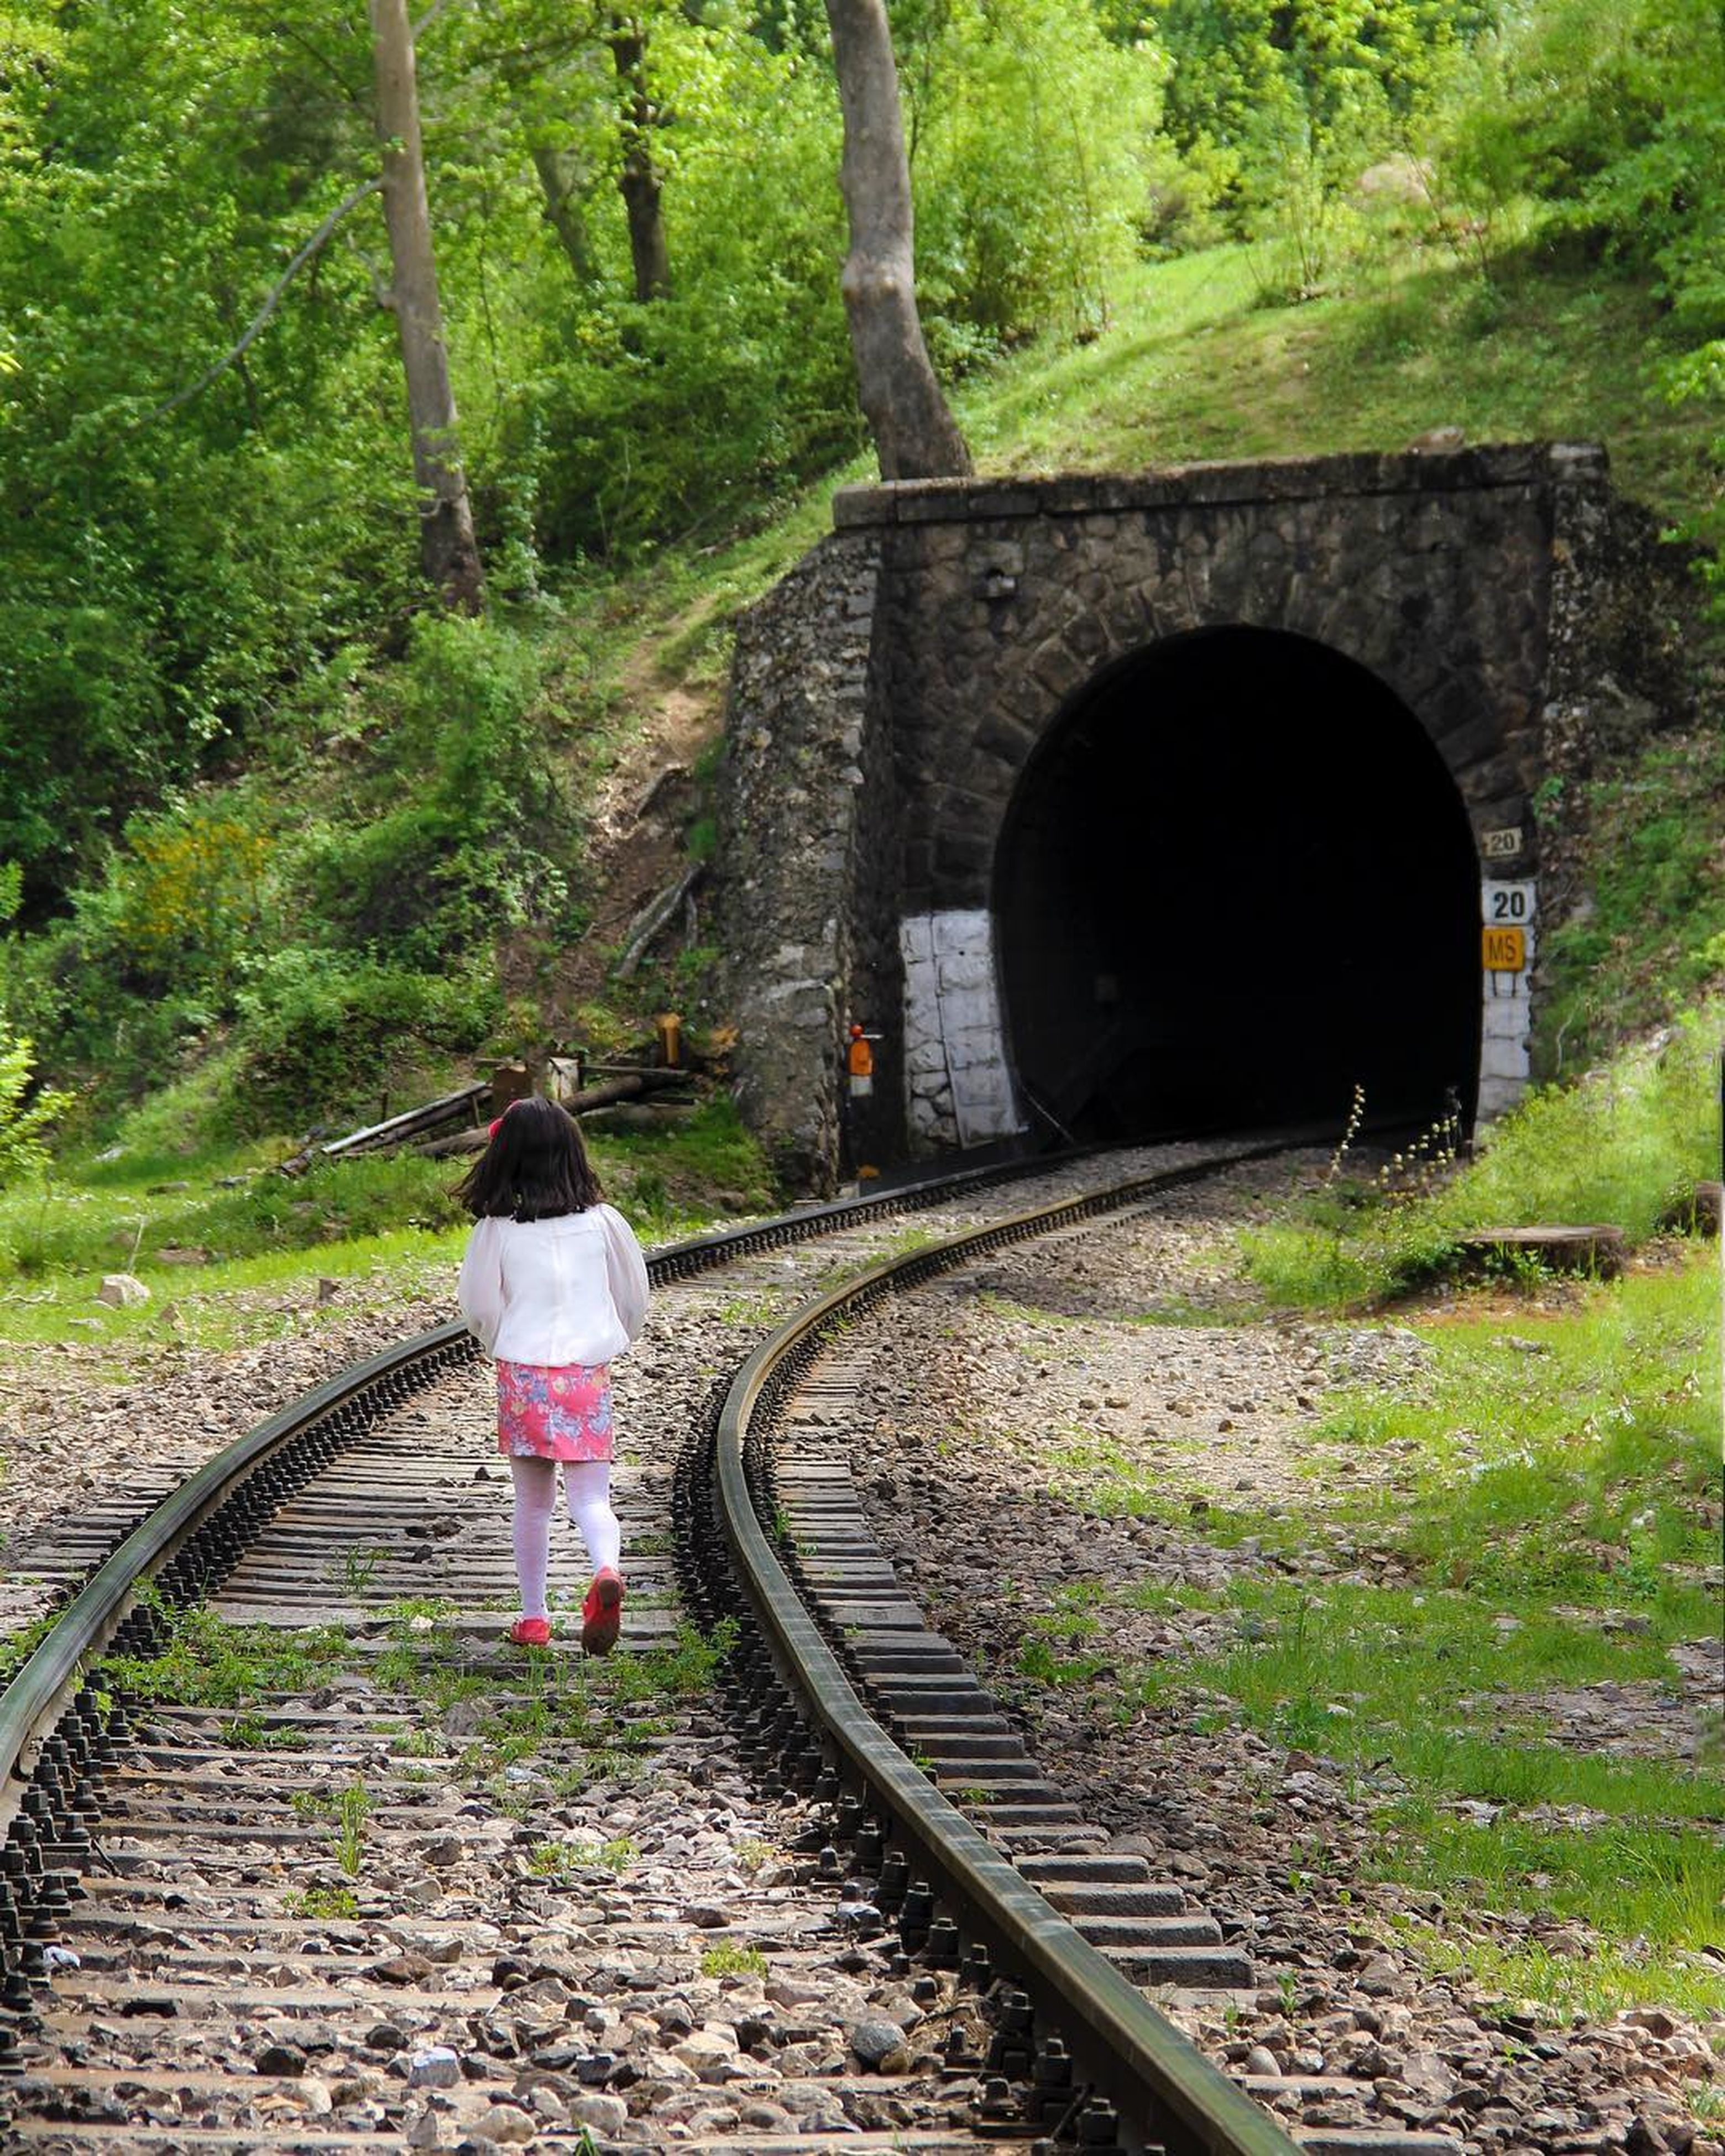 railroad track, transportation, rail transportation, full length, rear view, bridge - man made structure, standing, one person, tree, walking, day, nature, outdoors, adult, people, adults only